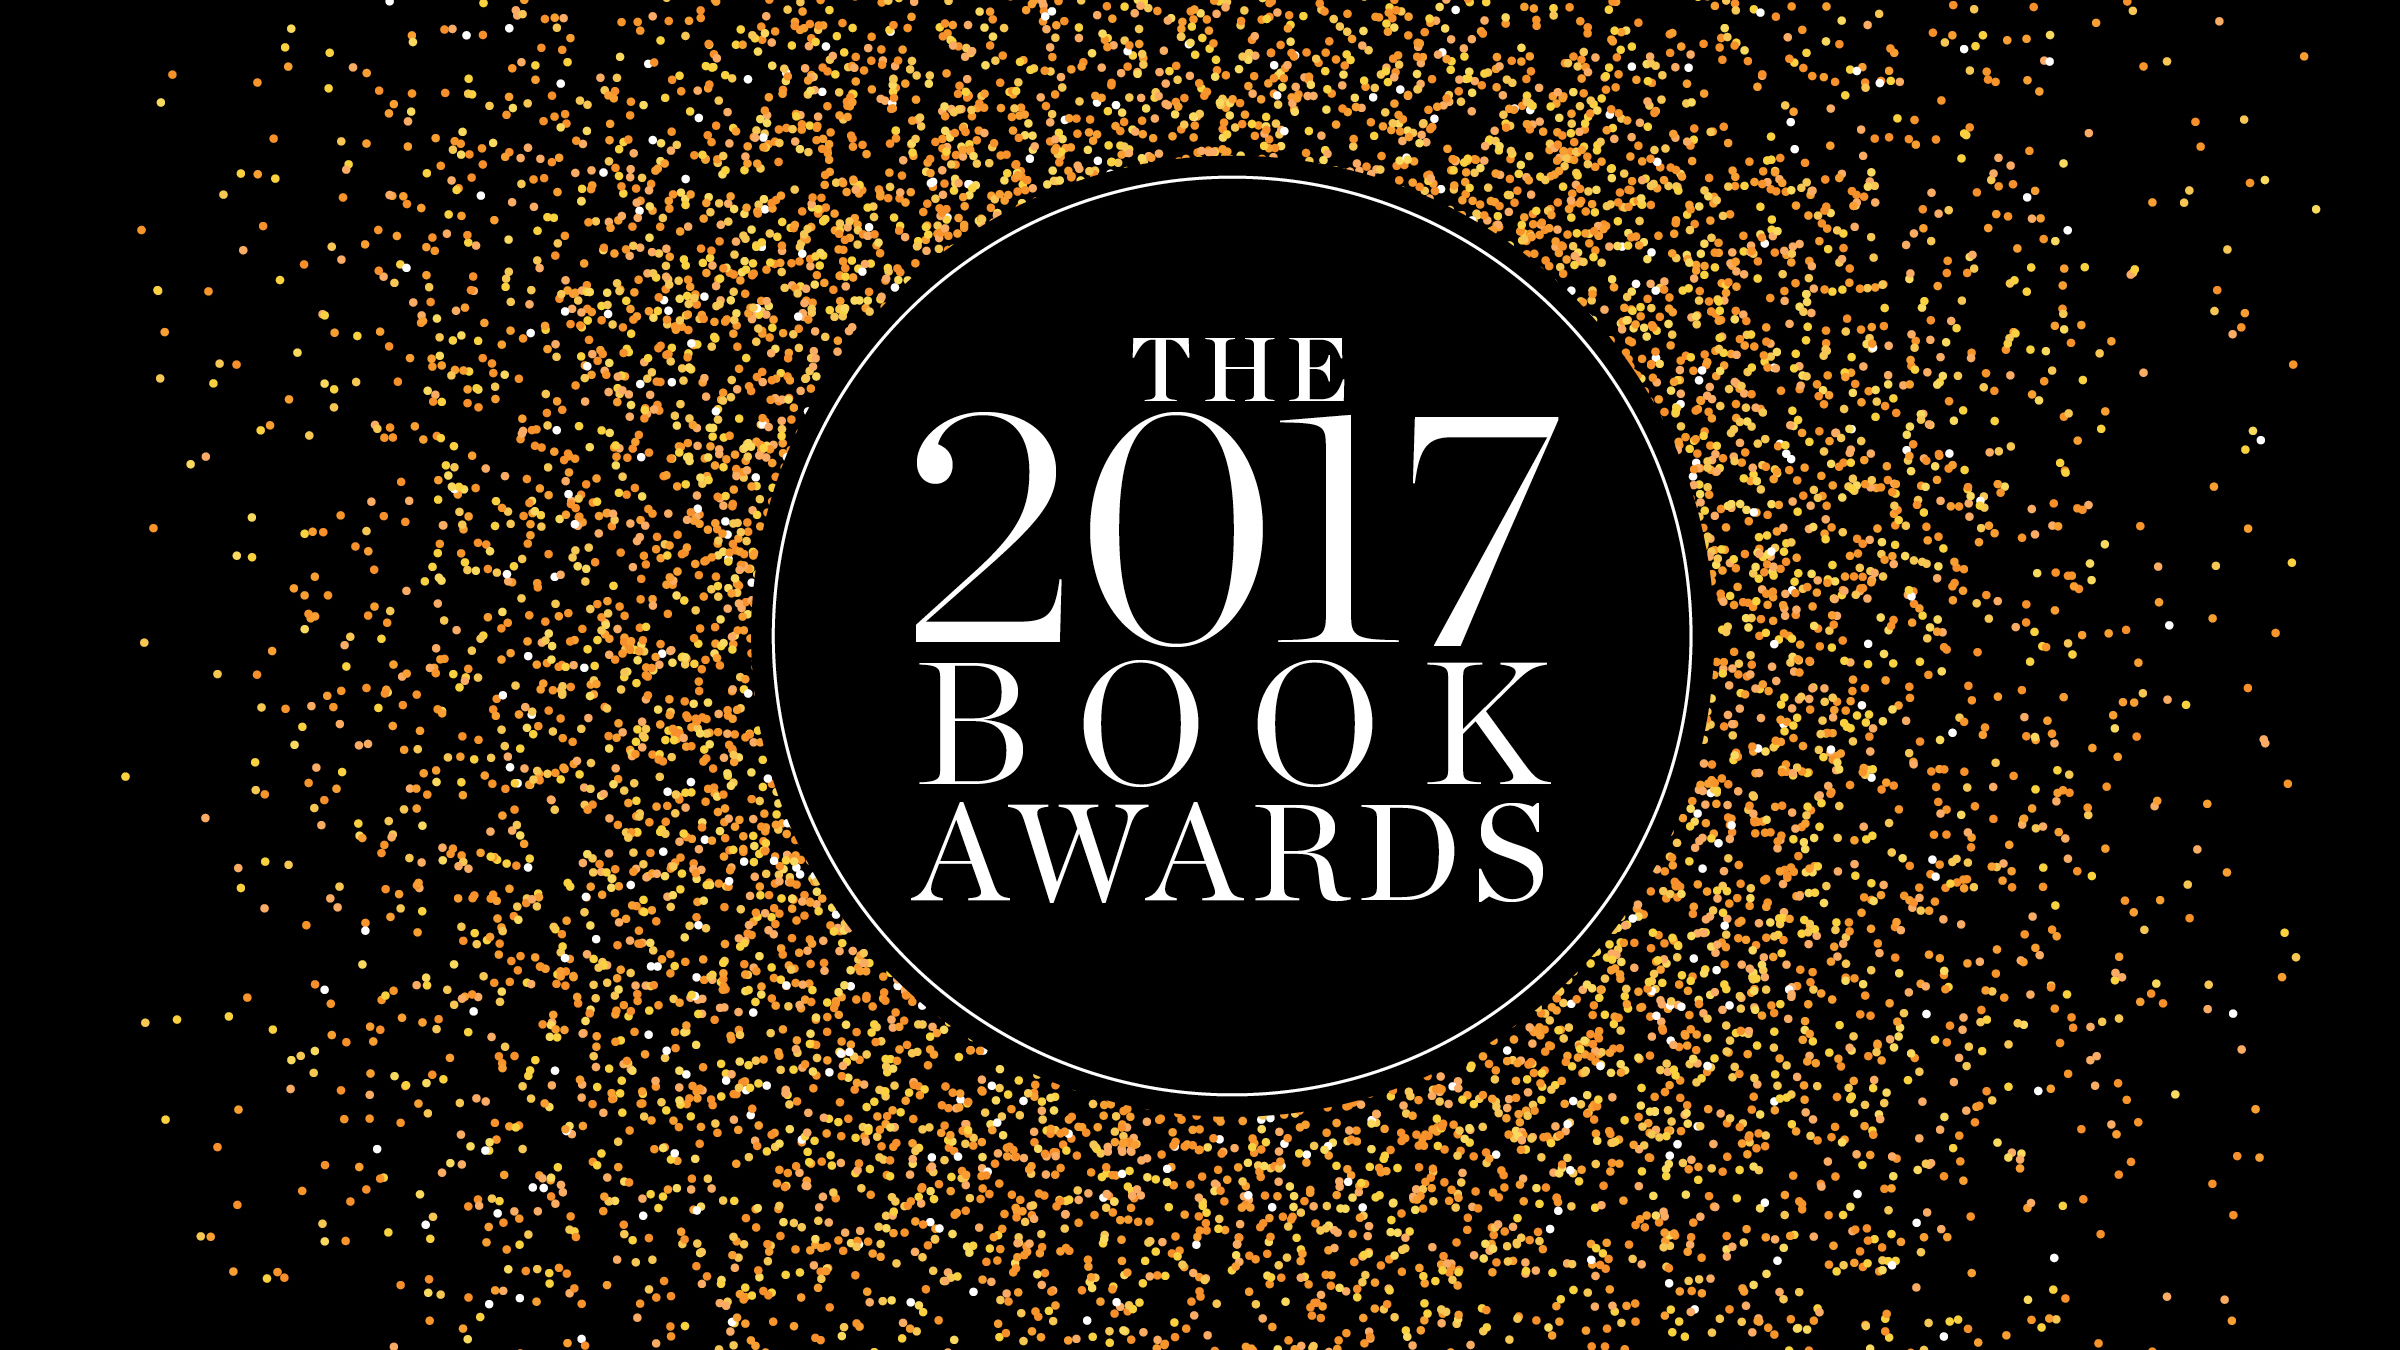 Christianity Today s 2017 Book Awards